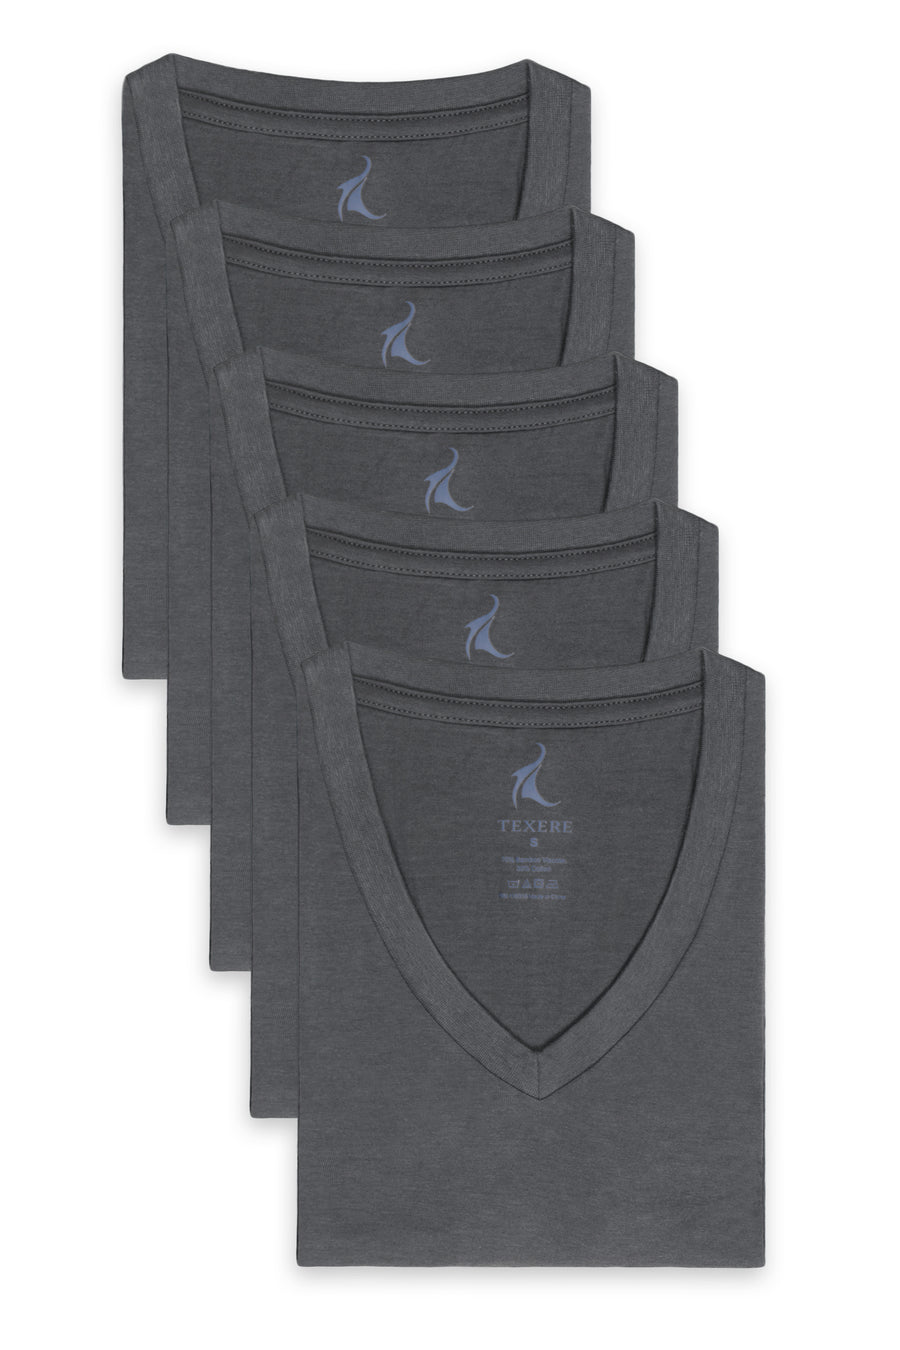 Meio - Men's Bamboo Viscose V-Neck Undershirt - 5 Pack - TexereSilk